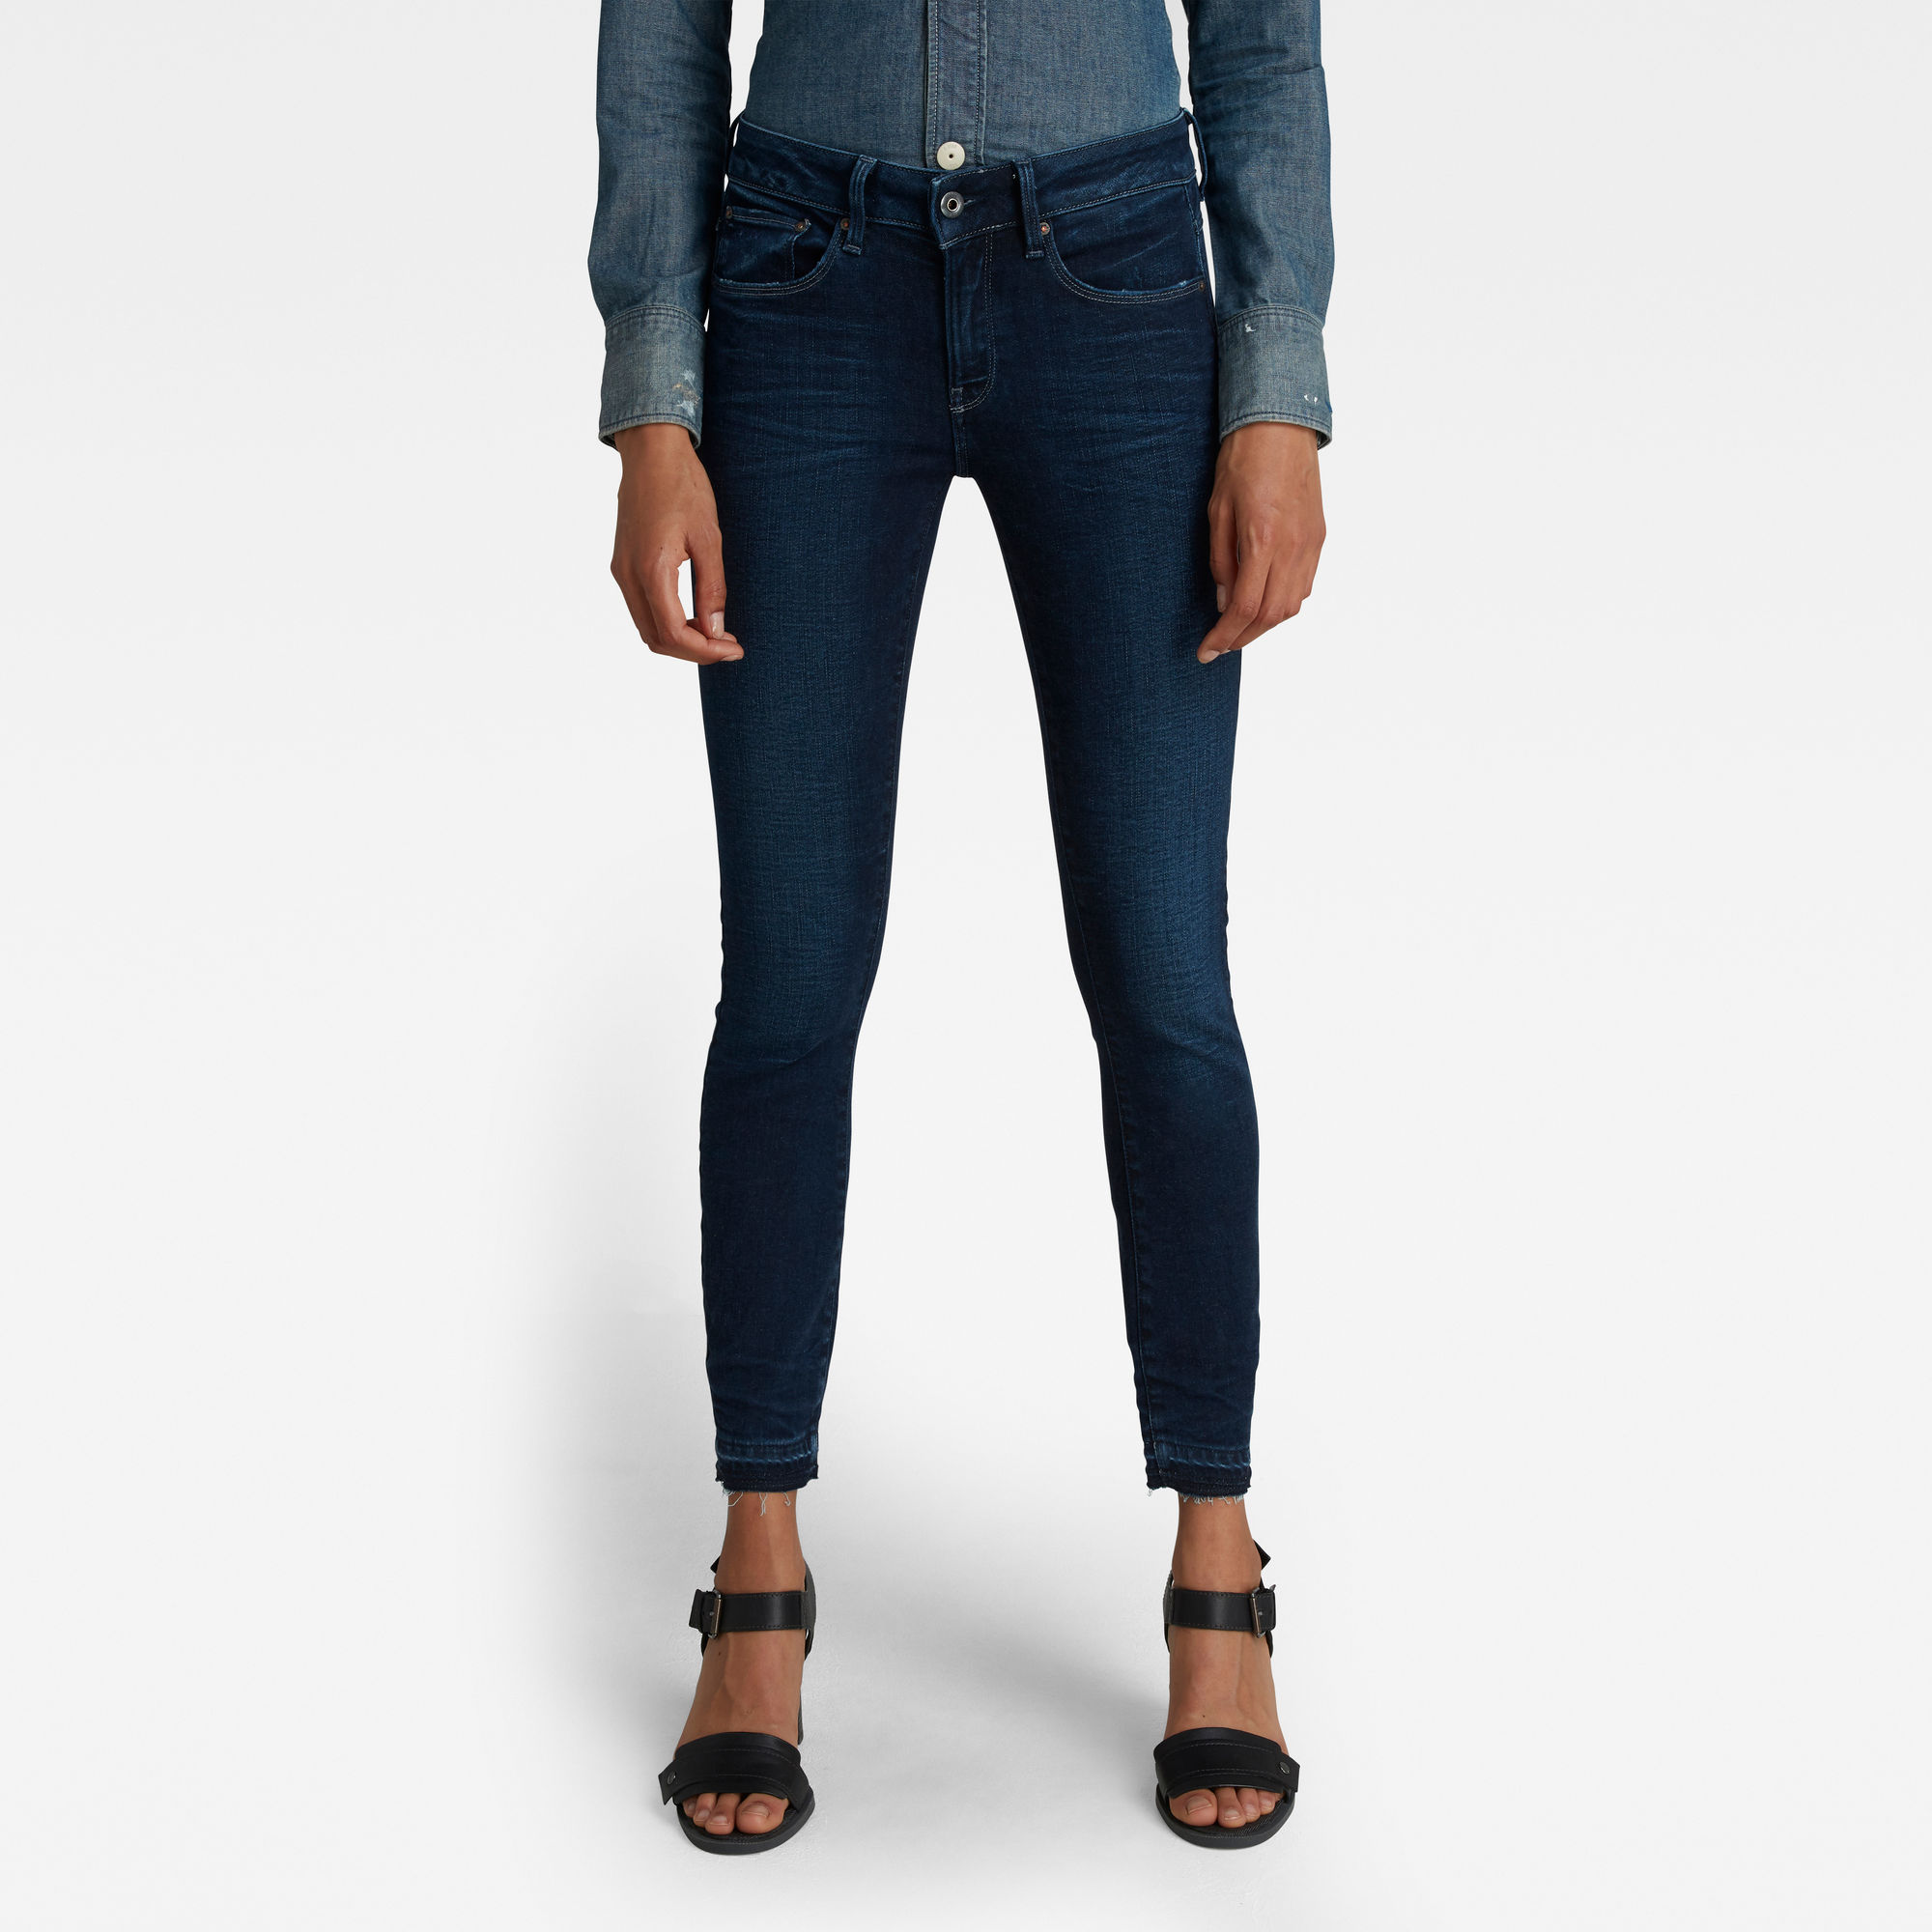 G-Star RAW Dames 3301 Mid Skinny Ankle Jeans Donkerblauw